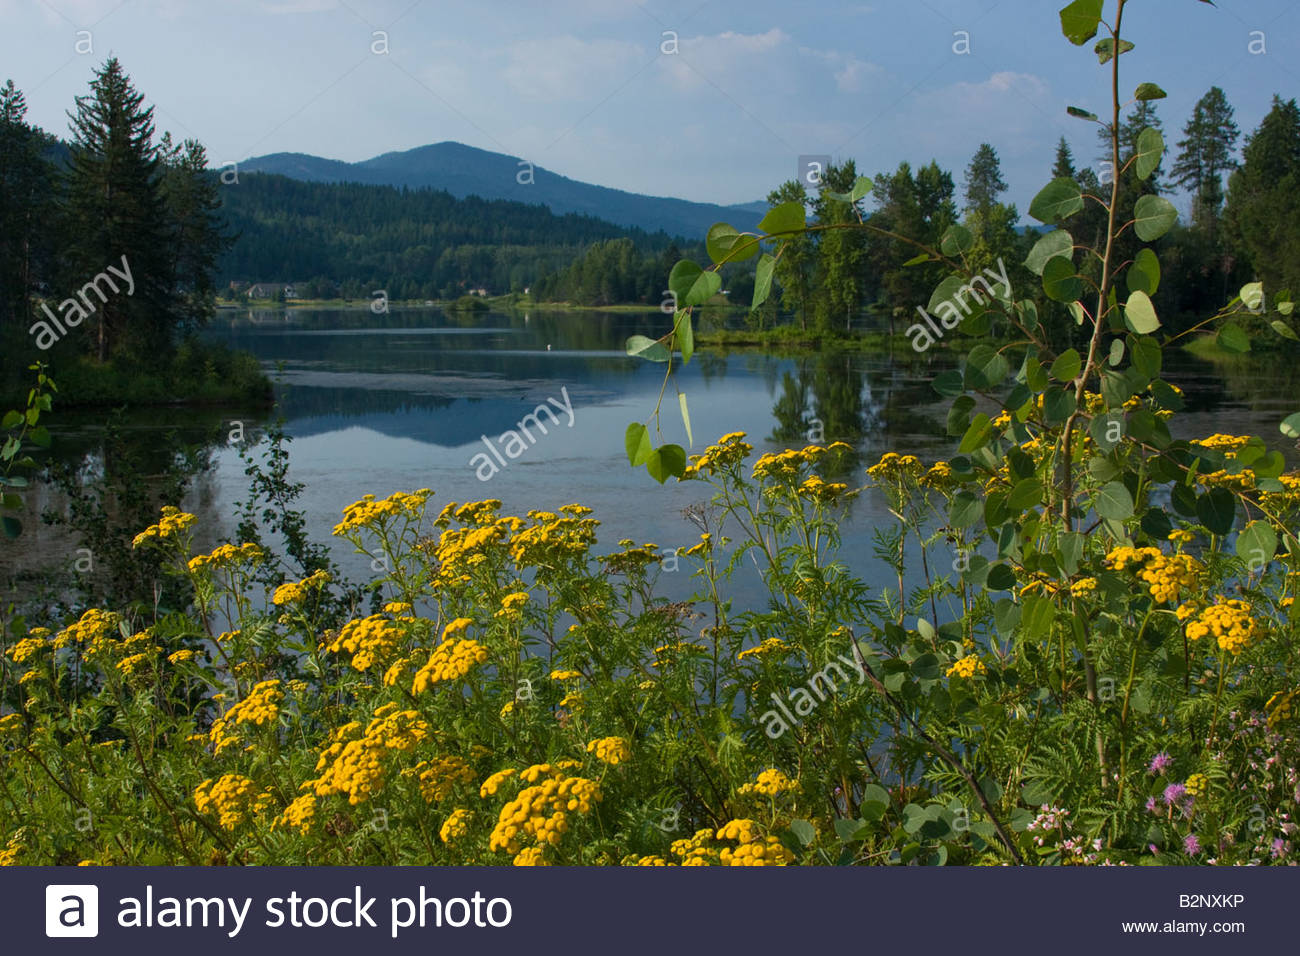 Sagle slough on a calm summer day Sandpoint, Idaho, USA - Stock Image